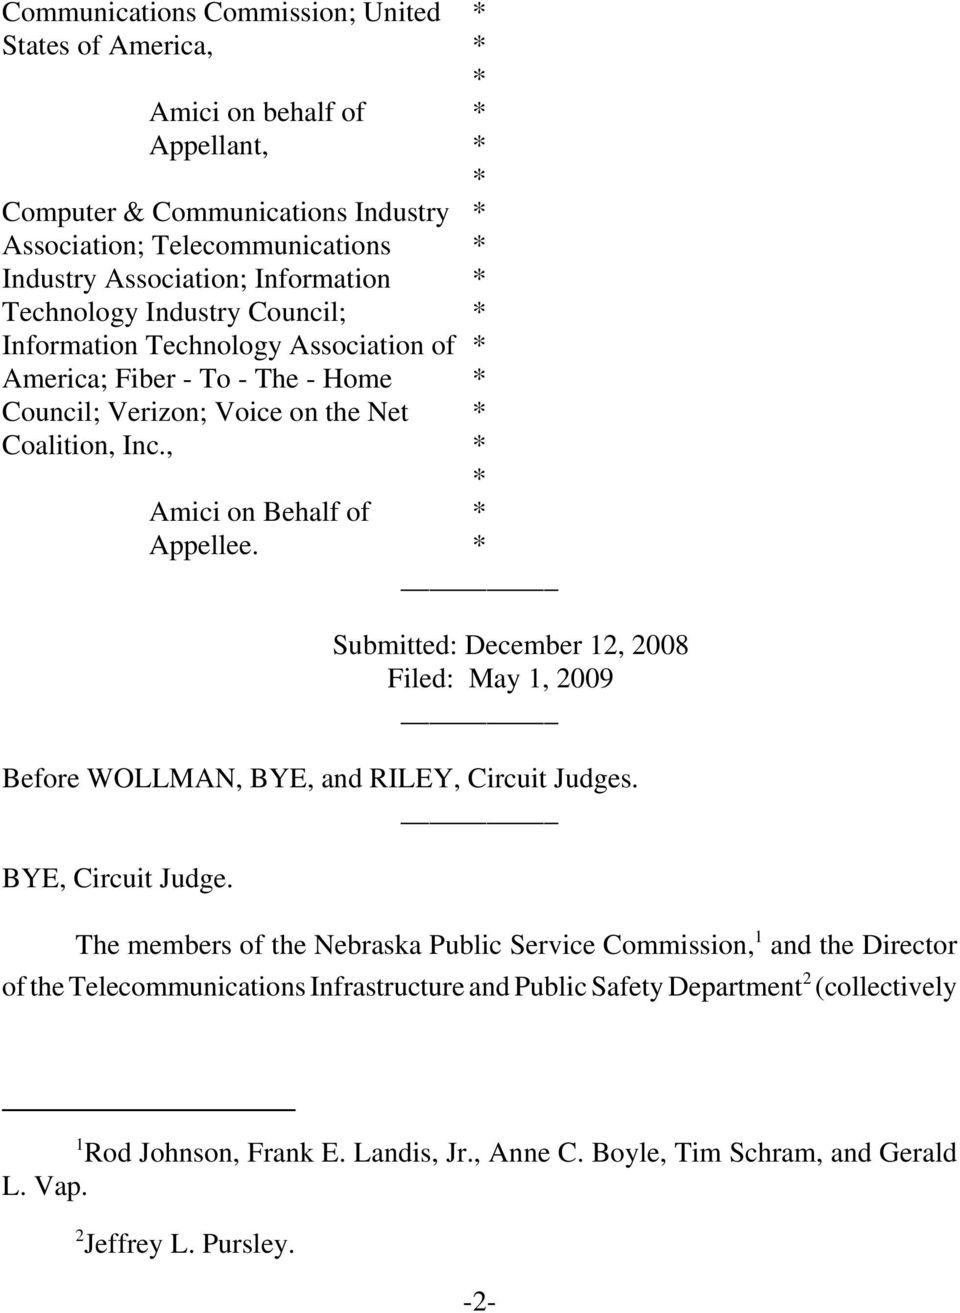 Submitted: December 12, 2008 Filed: May 1, 2009 Before WOLLMAN, BYE, and RILEY, Circuit Judges. BYE, Circuit Judge.